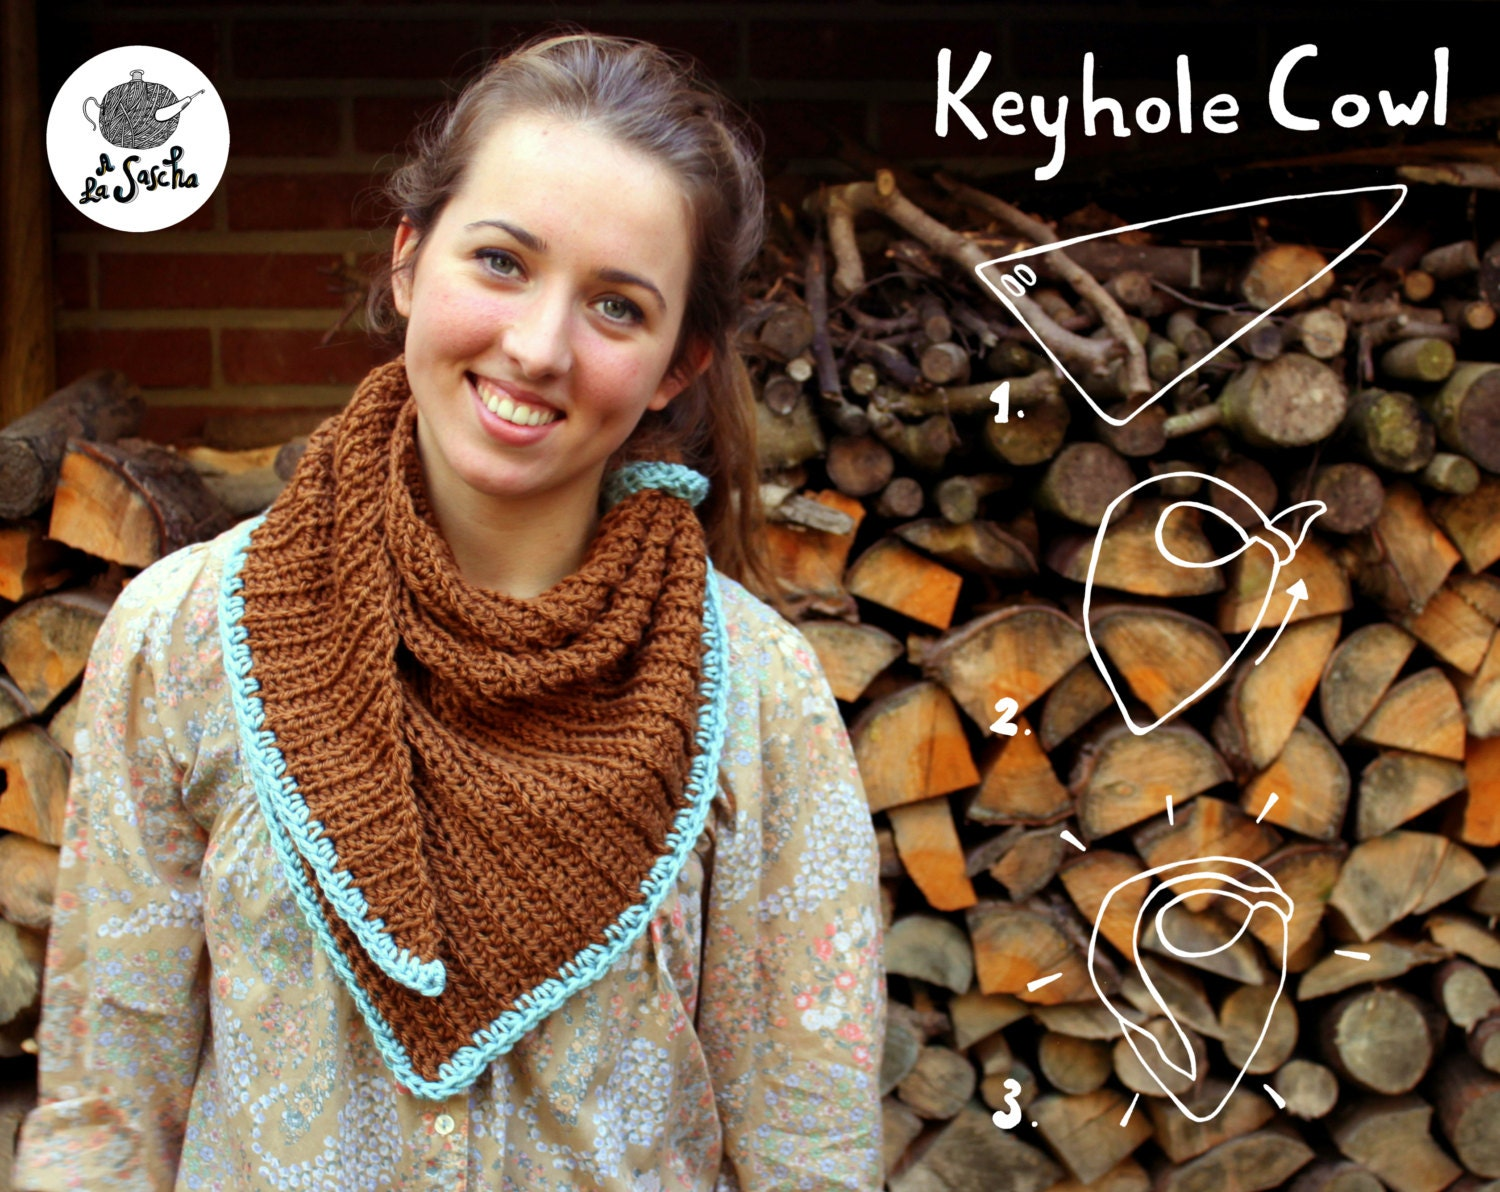 Keyhole Cowl crochet pdf pattern INSTANT DOWNLOAD